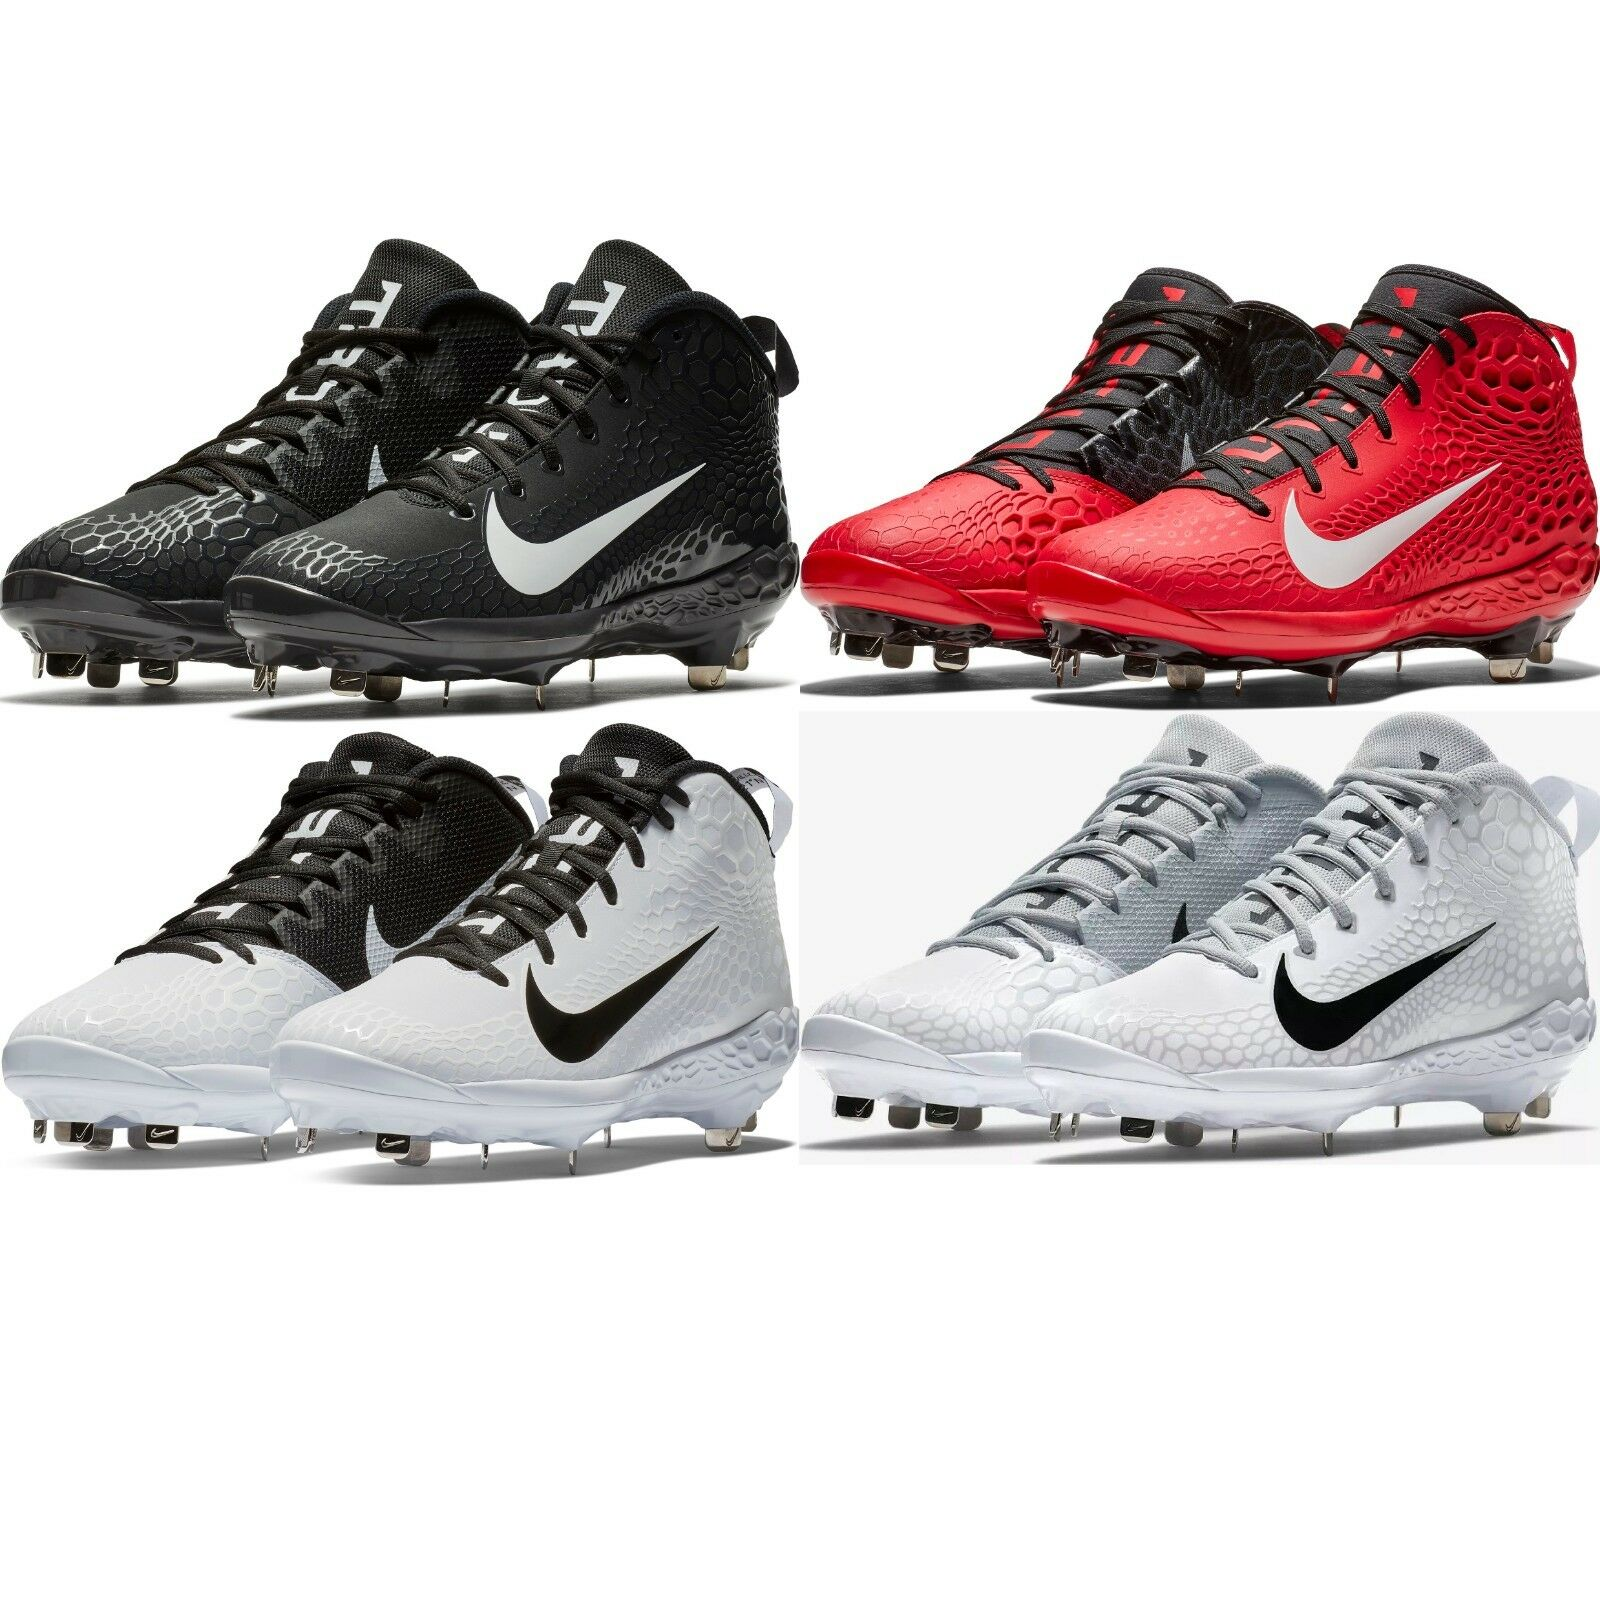 Nike Force Zoom Trout 5 Pro Men's Mid Metal Baseball Cleats Comfy shoes